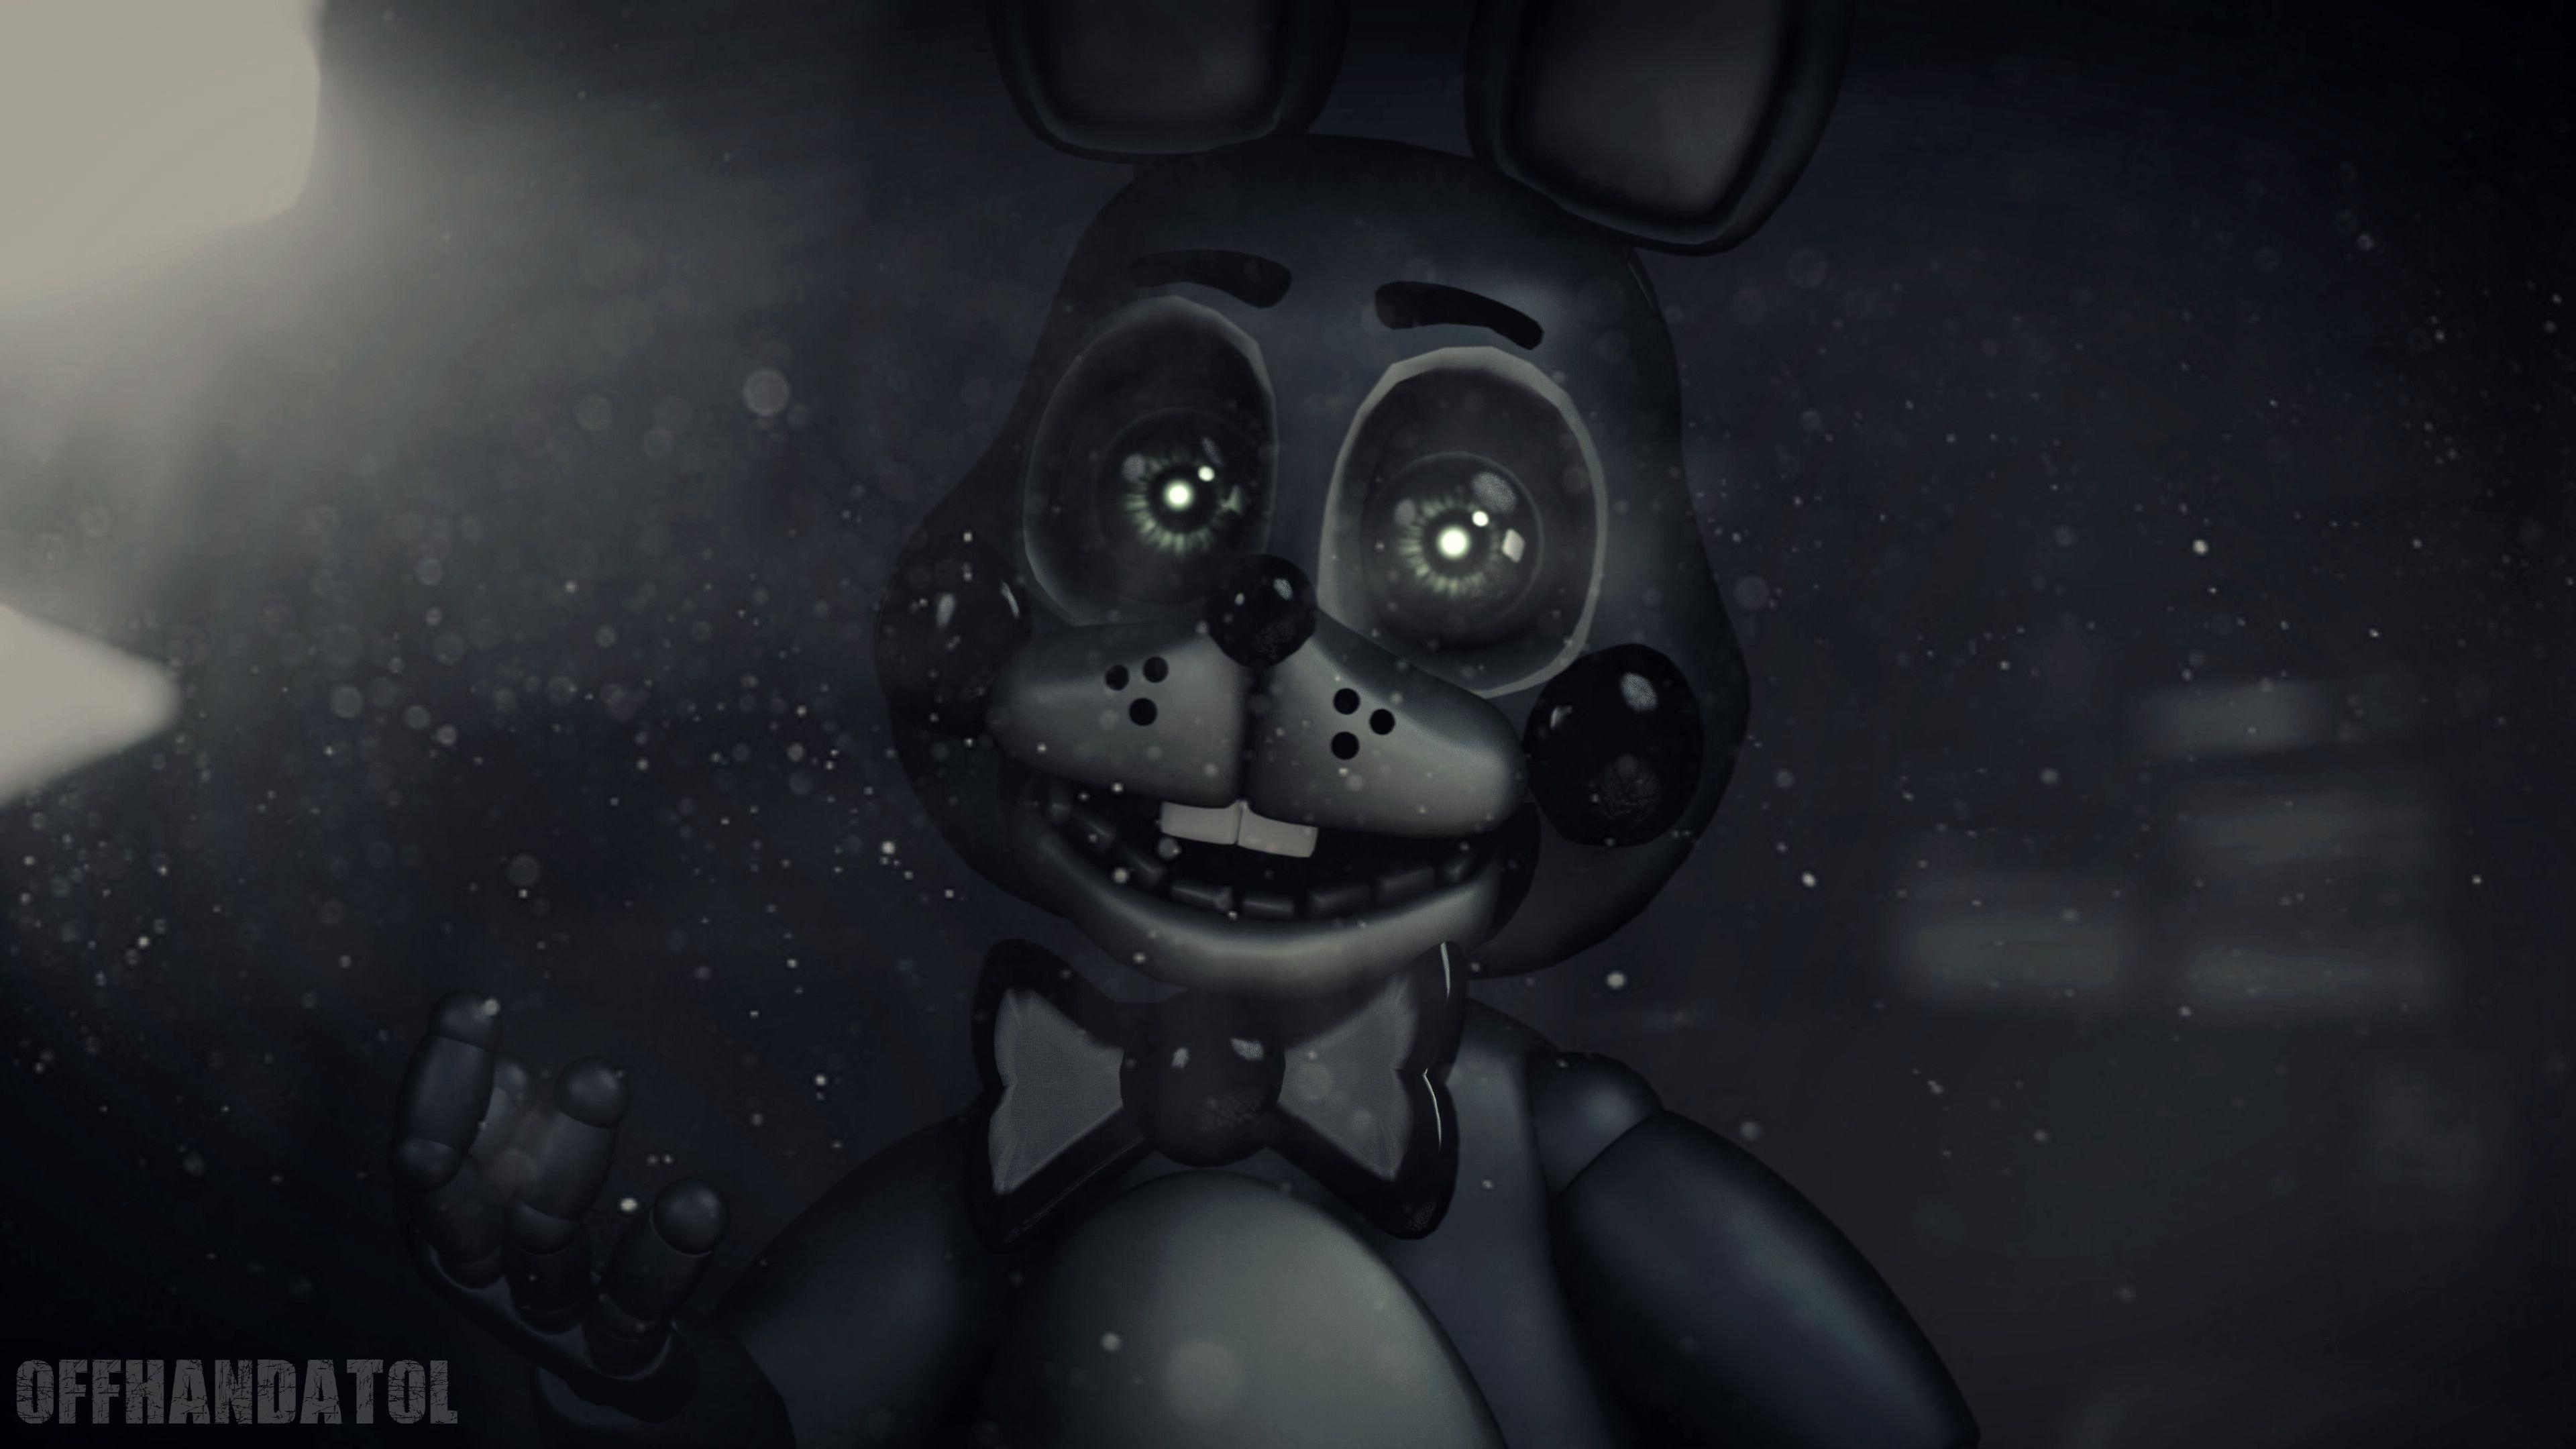 Shadow Bonnie Wallpapers Wallpaper Cave Shadow bonnie can be deterred in fnaf ar. shadow bonnie wallpapers wallpaper cave